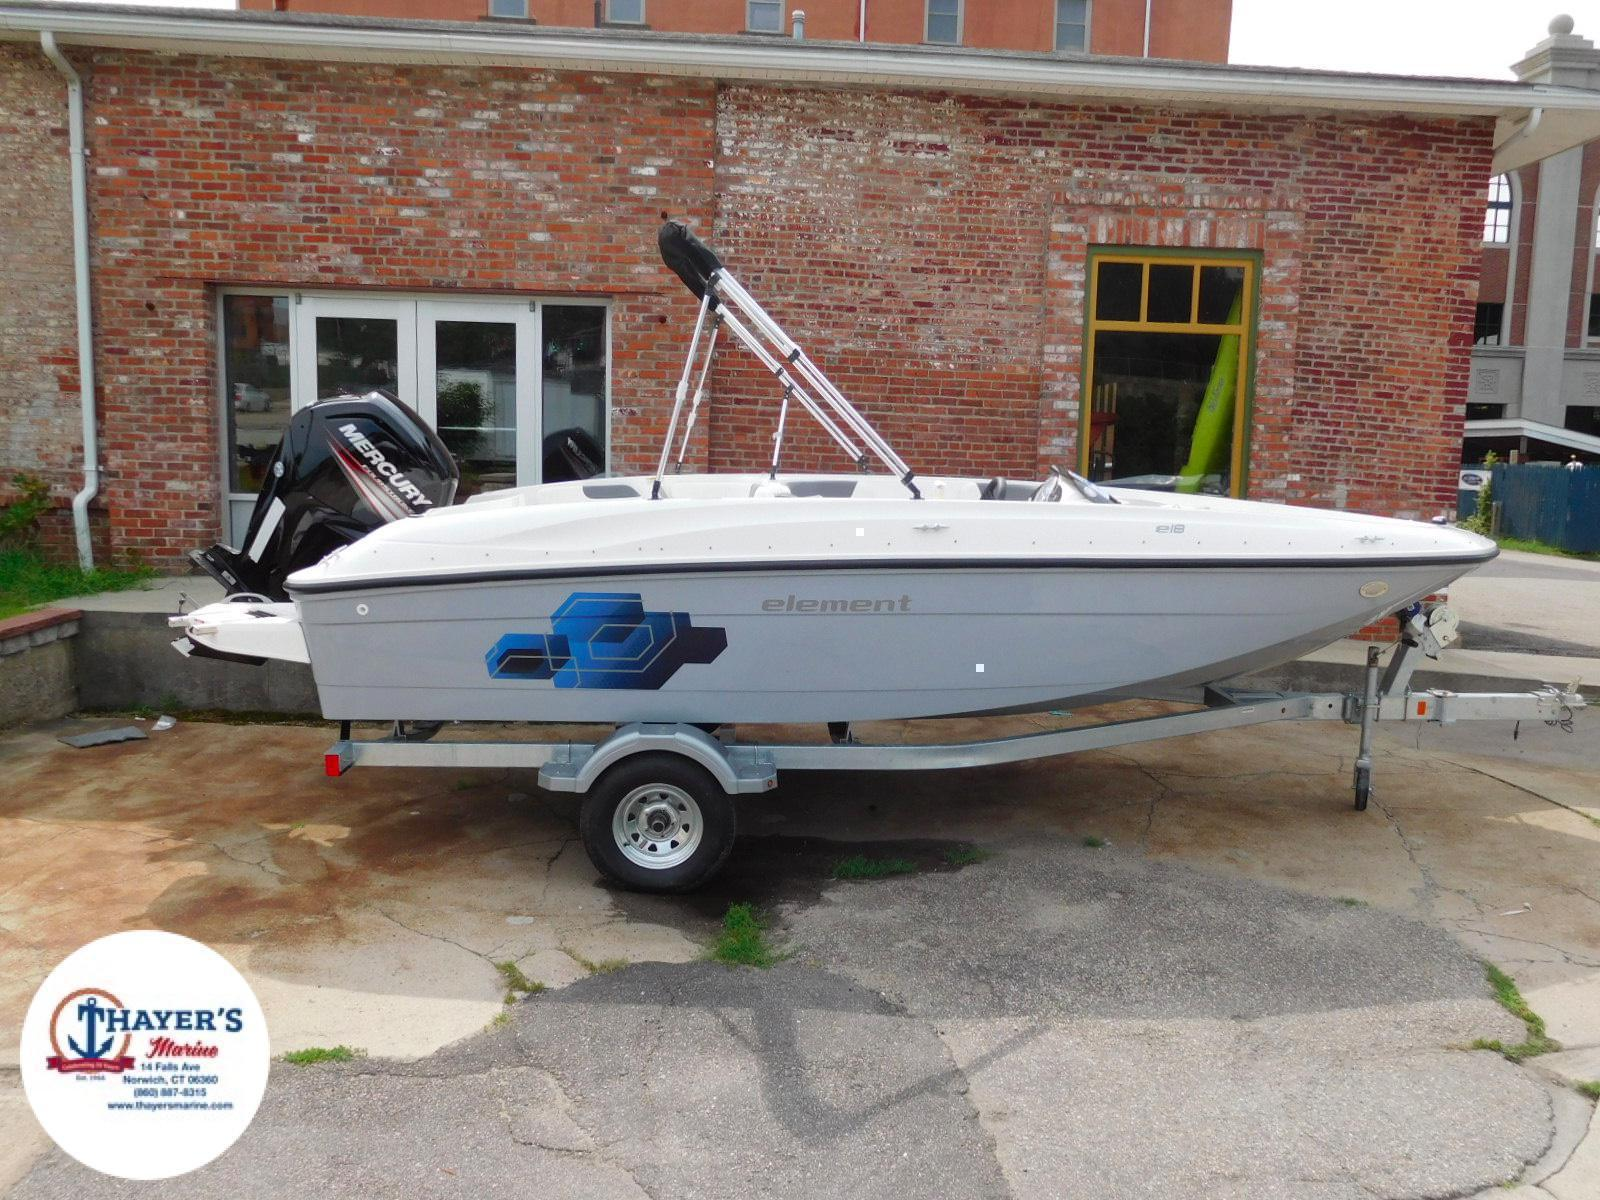 2018 Bayliner boat for sale, model of the boat is Element E18 & Image # 2 of 17